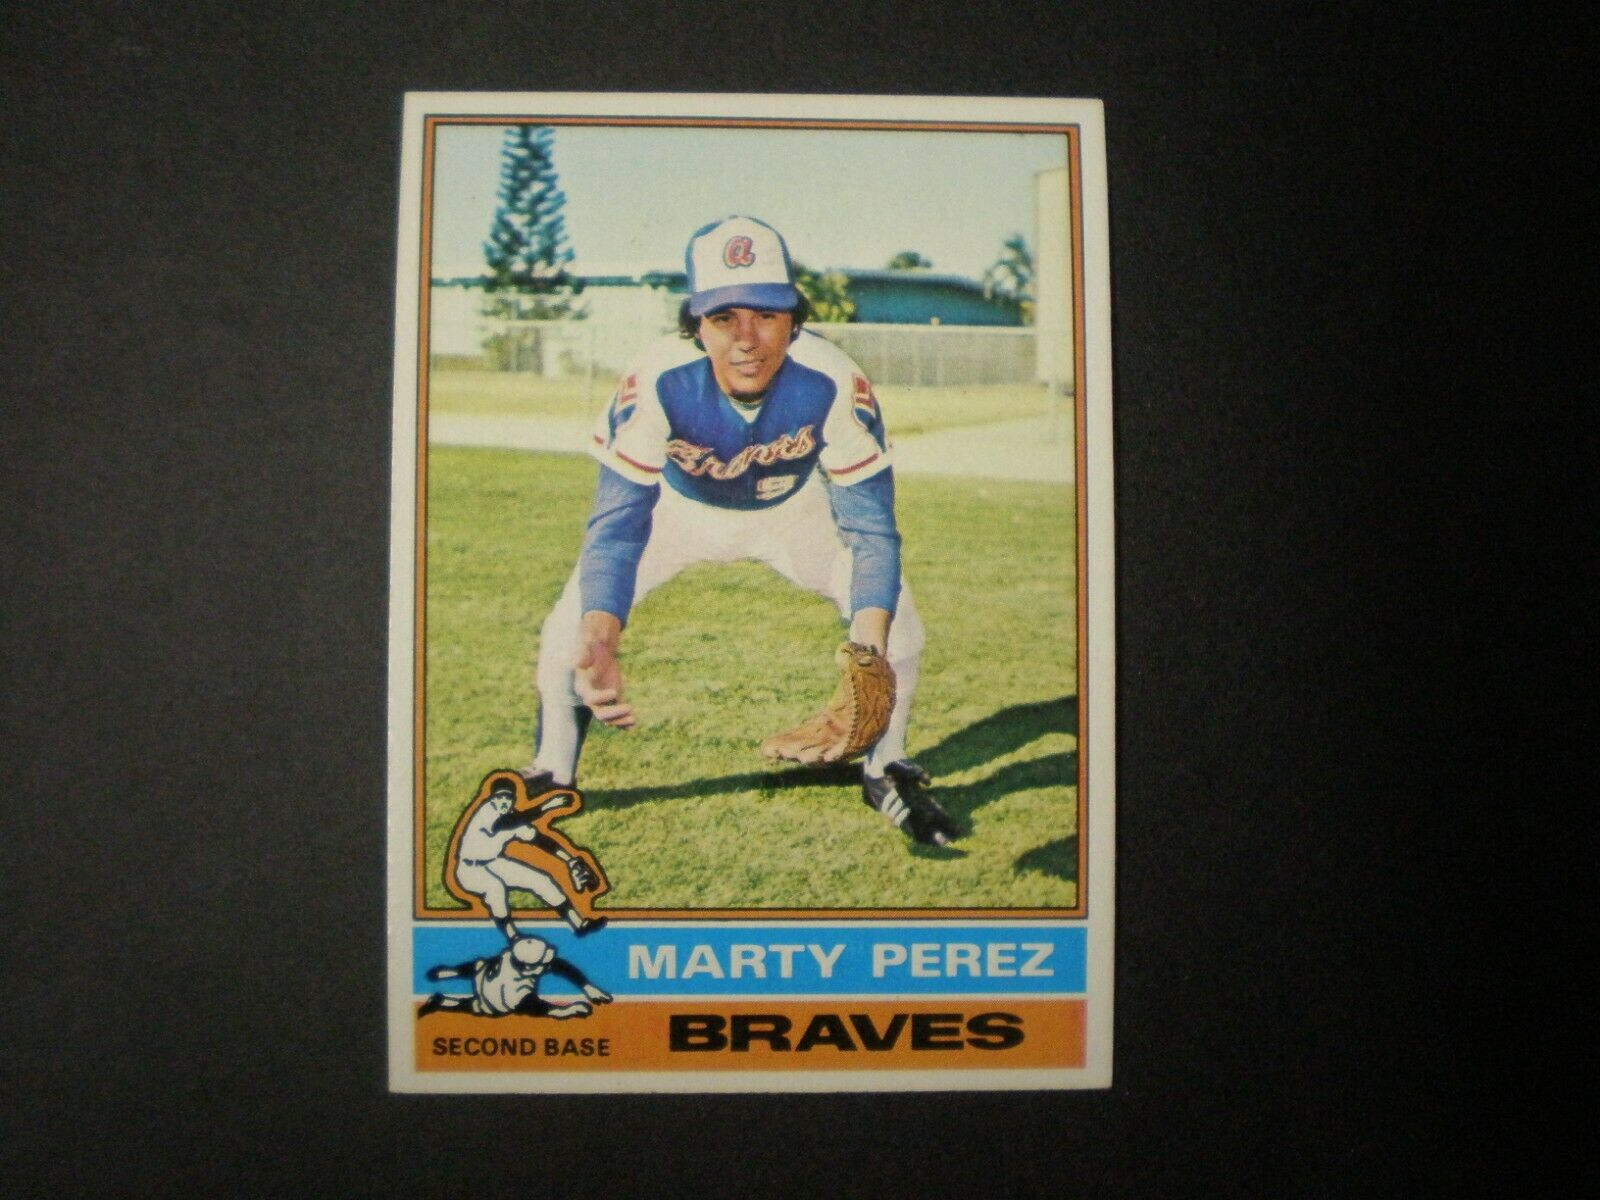 1976 Hostess Marty Perez 65 Baseball Card For Sale Online